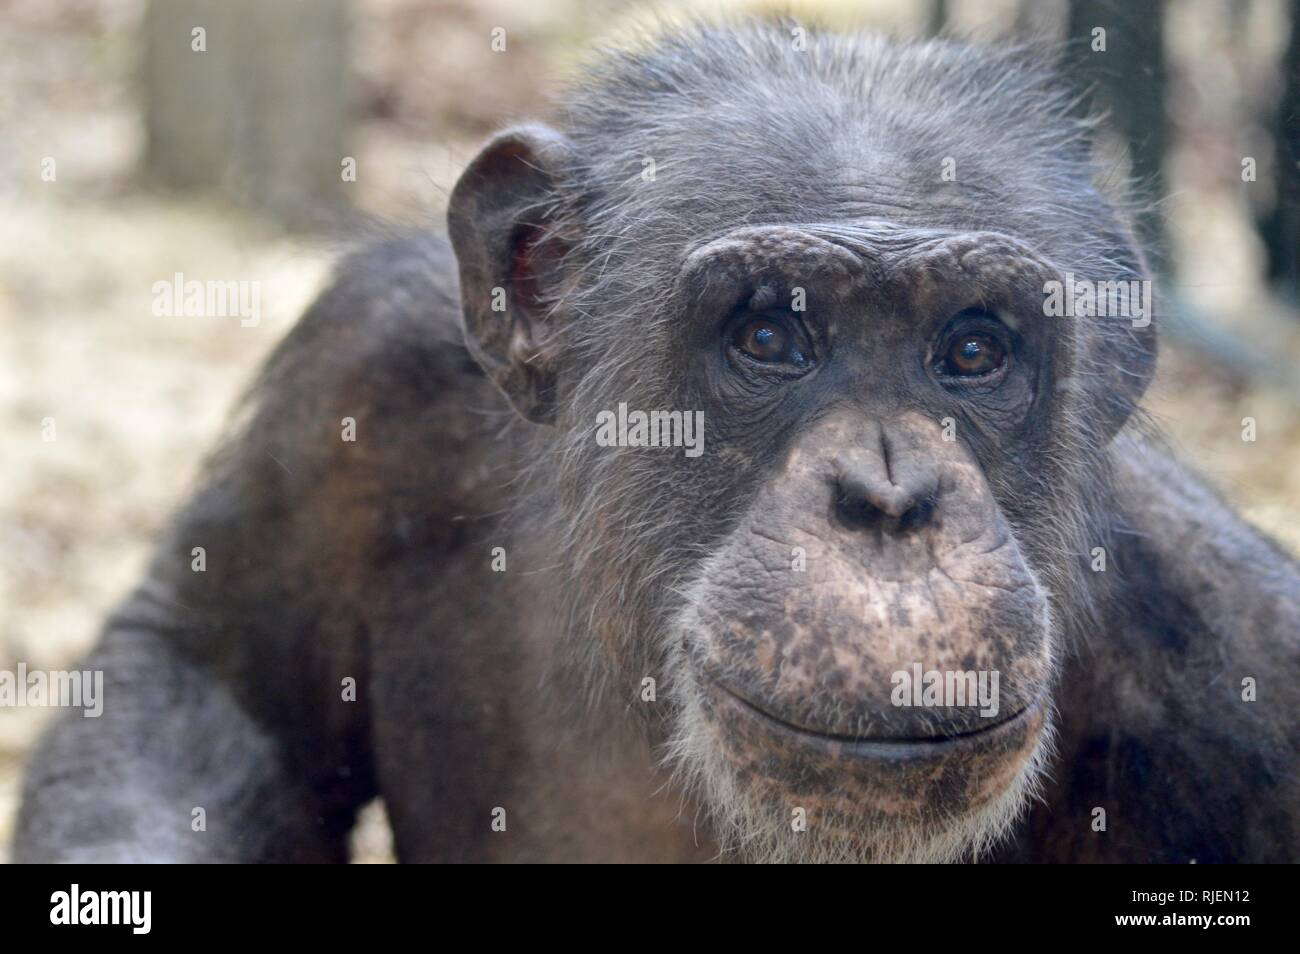 Flynn the chimpanzee - Stock Image